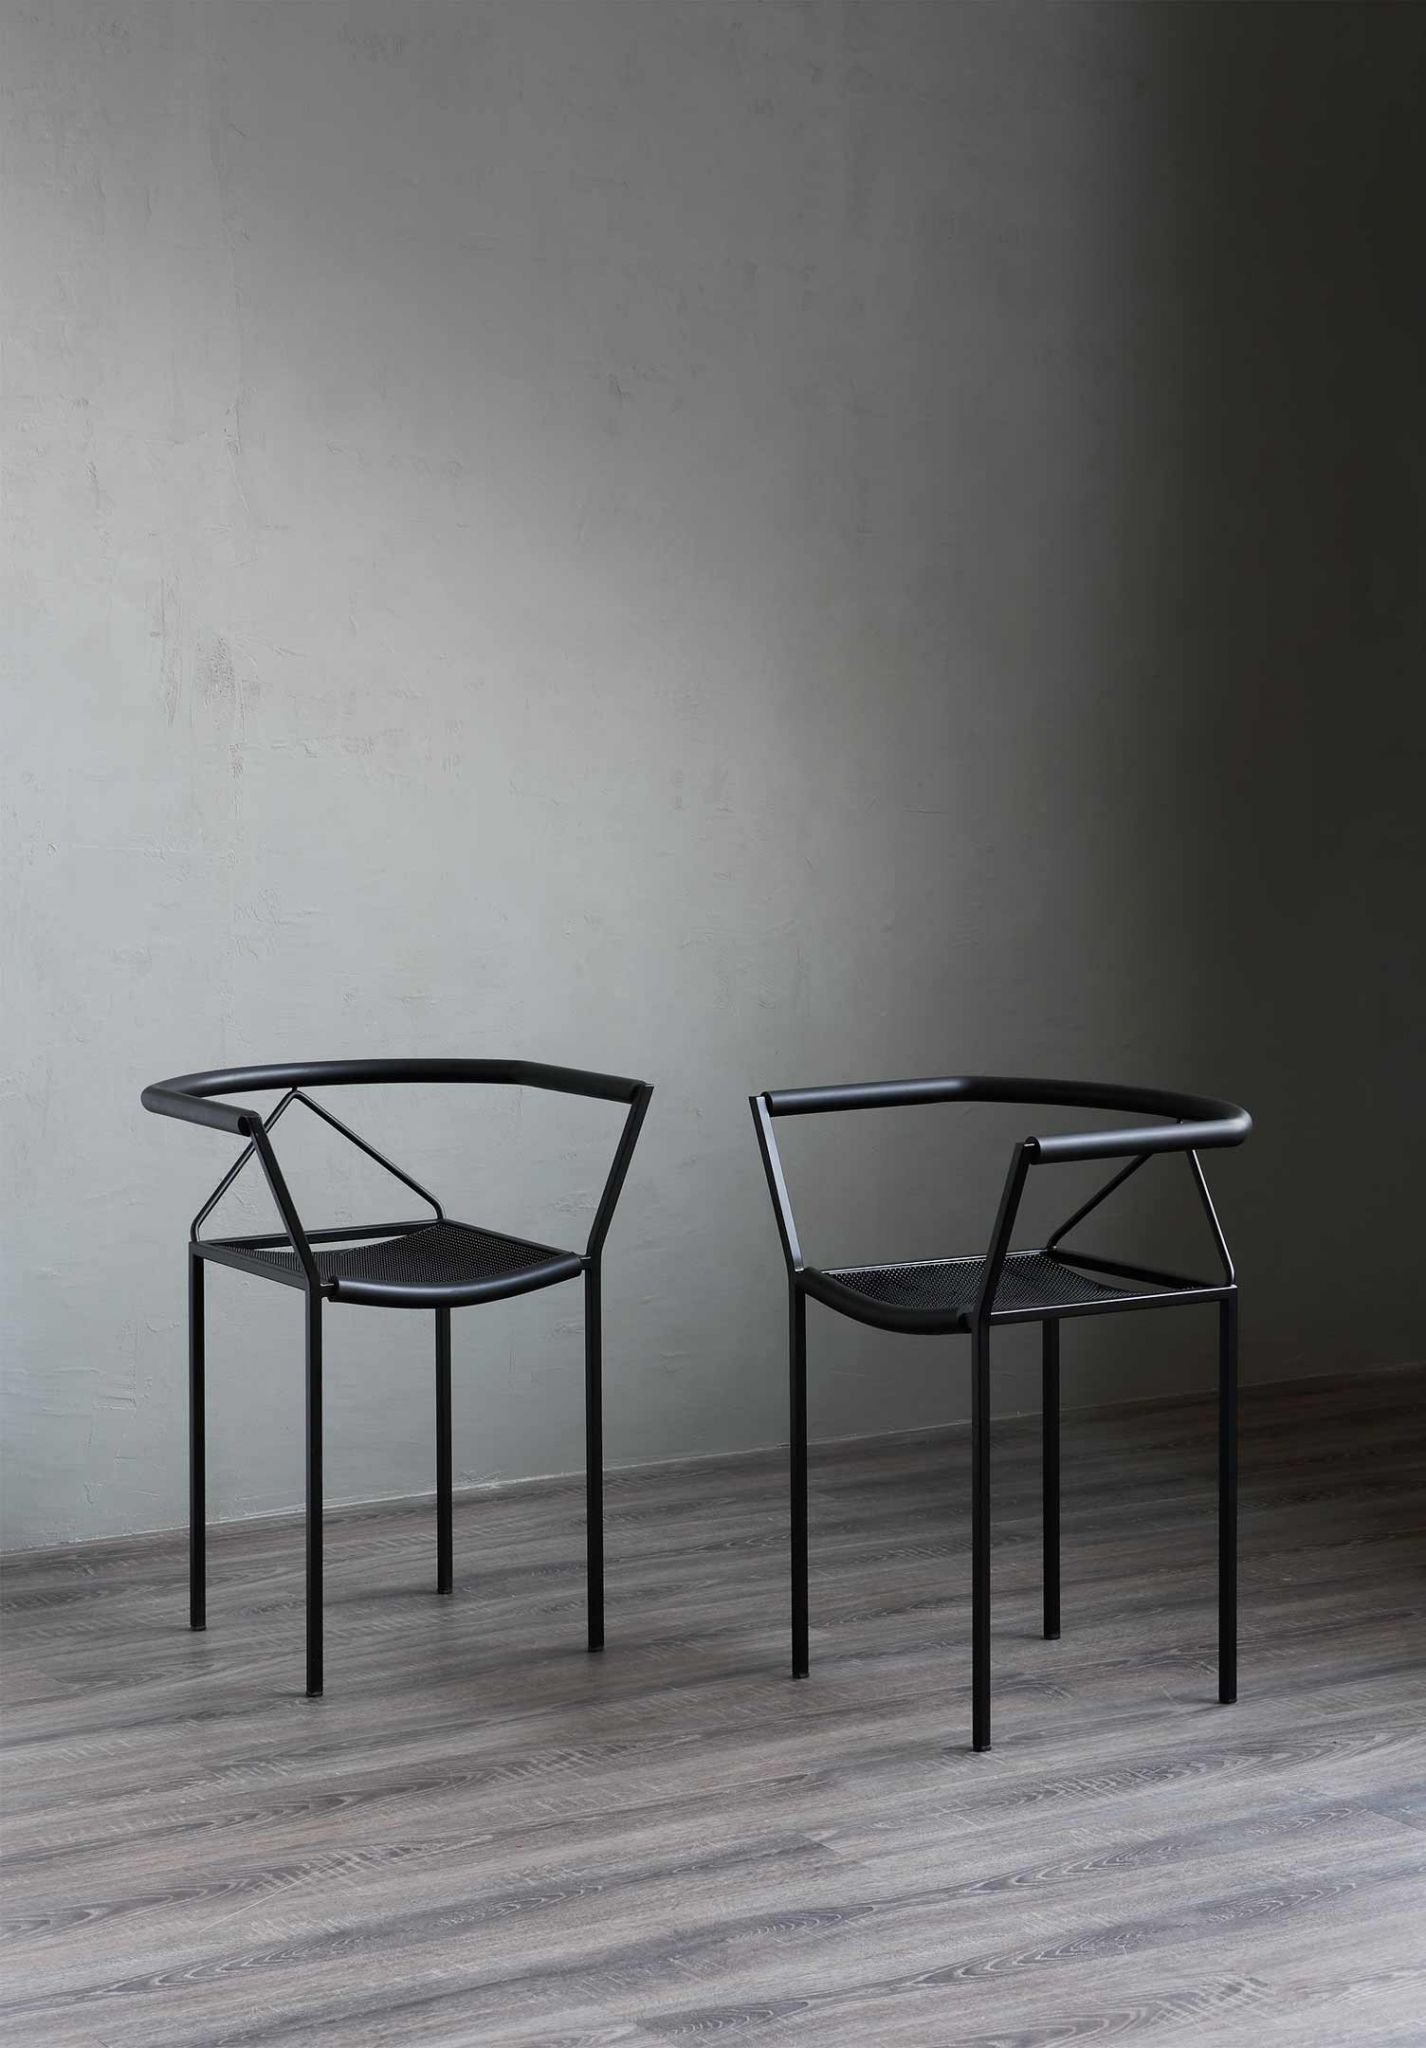 Poltroncina - The Poltroncina armchair is a unique take on the normal form of an armchair. Designed in 1984 by Maurizio Peregalli this armchair is elegant while having a striking angular structure. It has a steel square tube frame (15 x 15cm) ,which is embossed black, with seating in thousand points rubber, all black. | Matter of Stuff